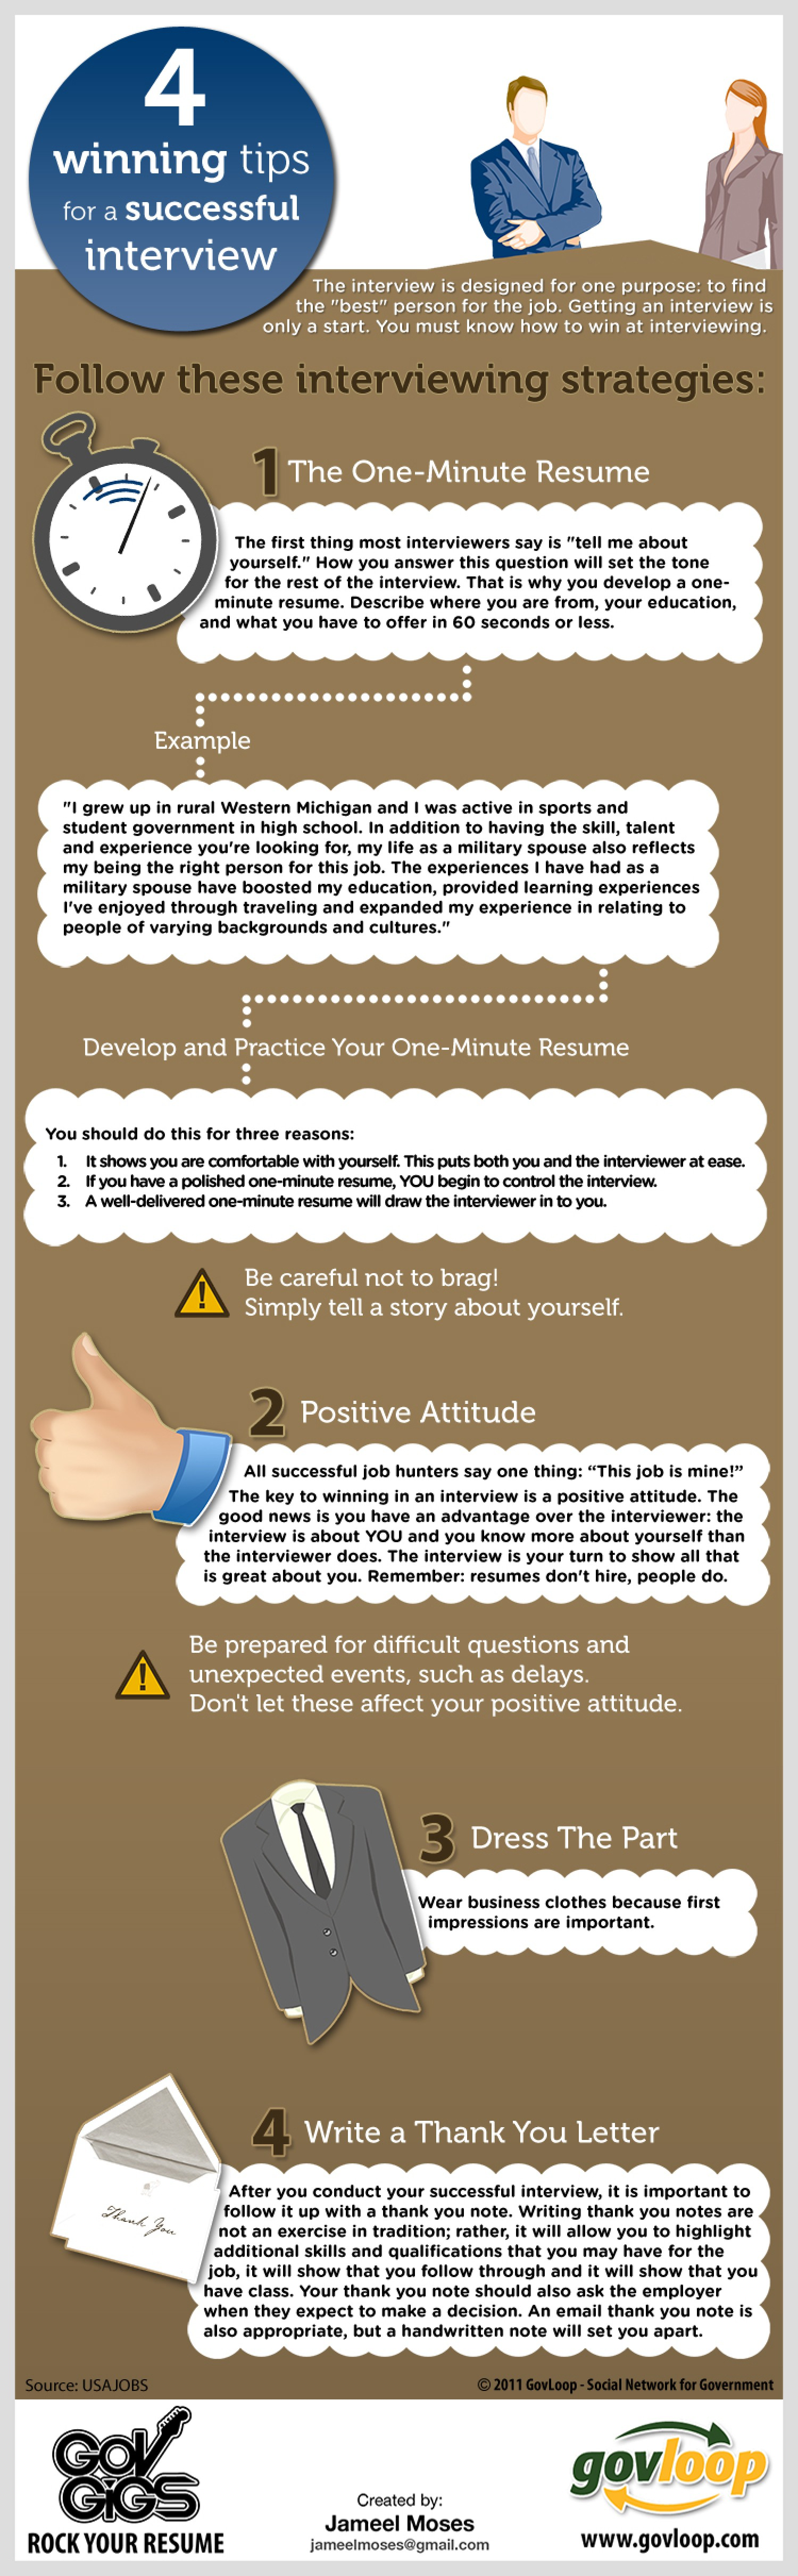 4 winning tips for a successful job interview infographic govloop knowledge network for government - How To Have A Good Interview Tips For A Good Interview